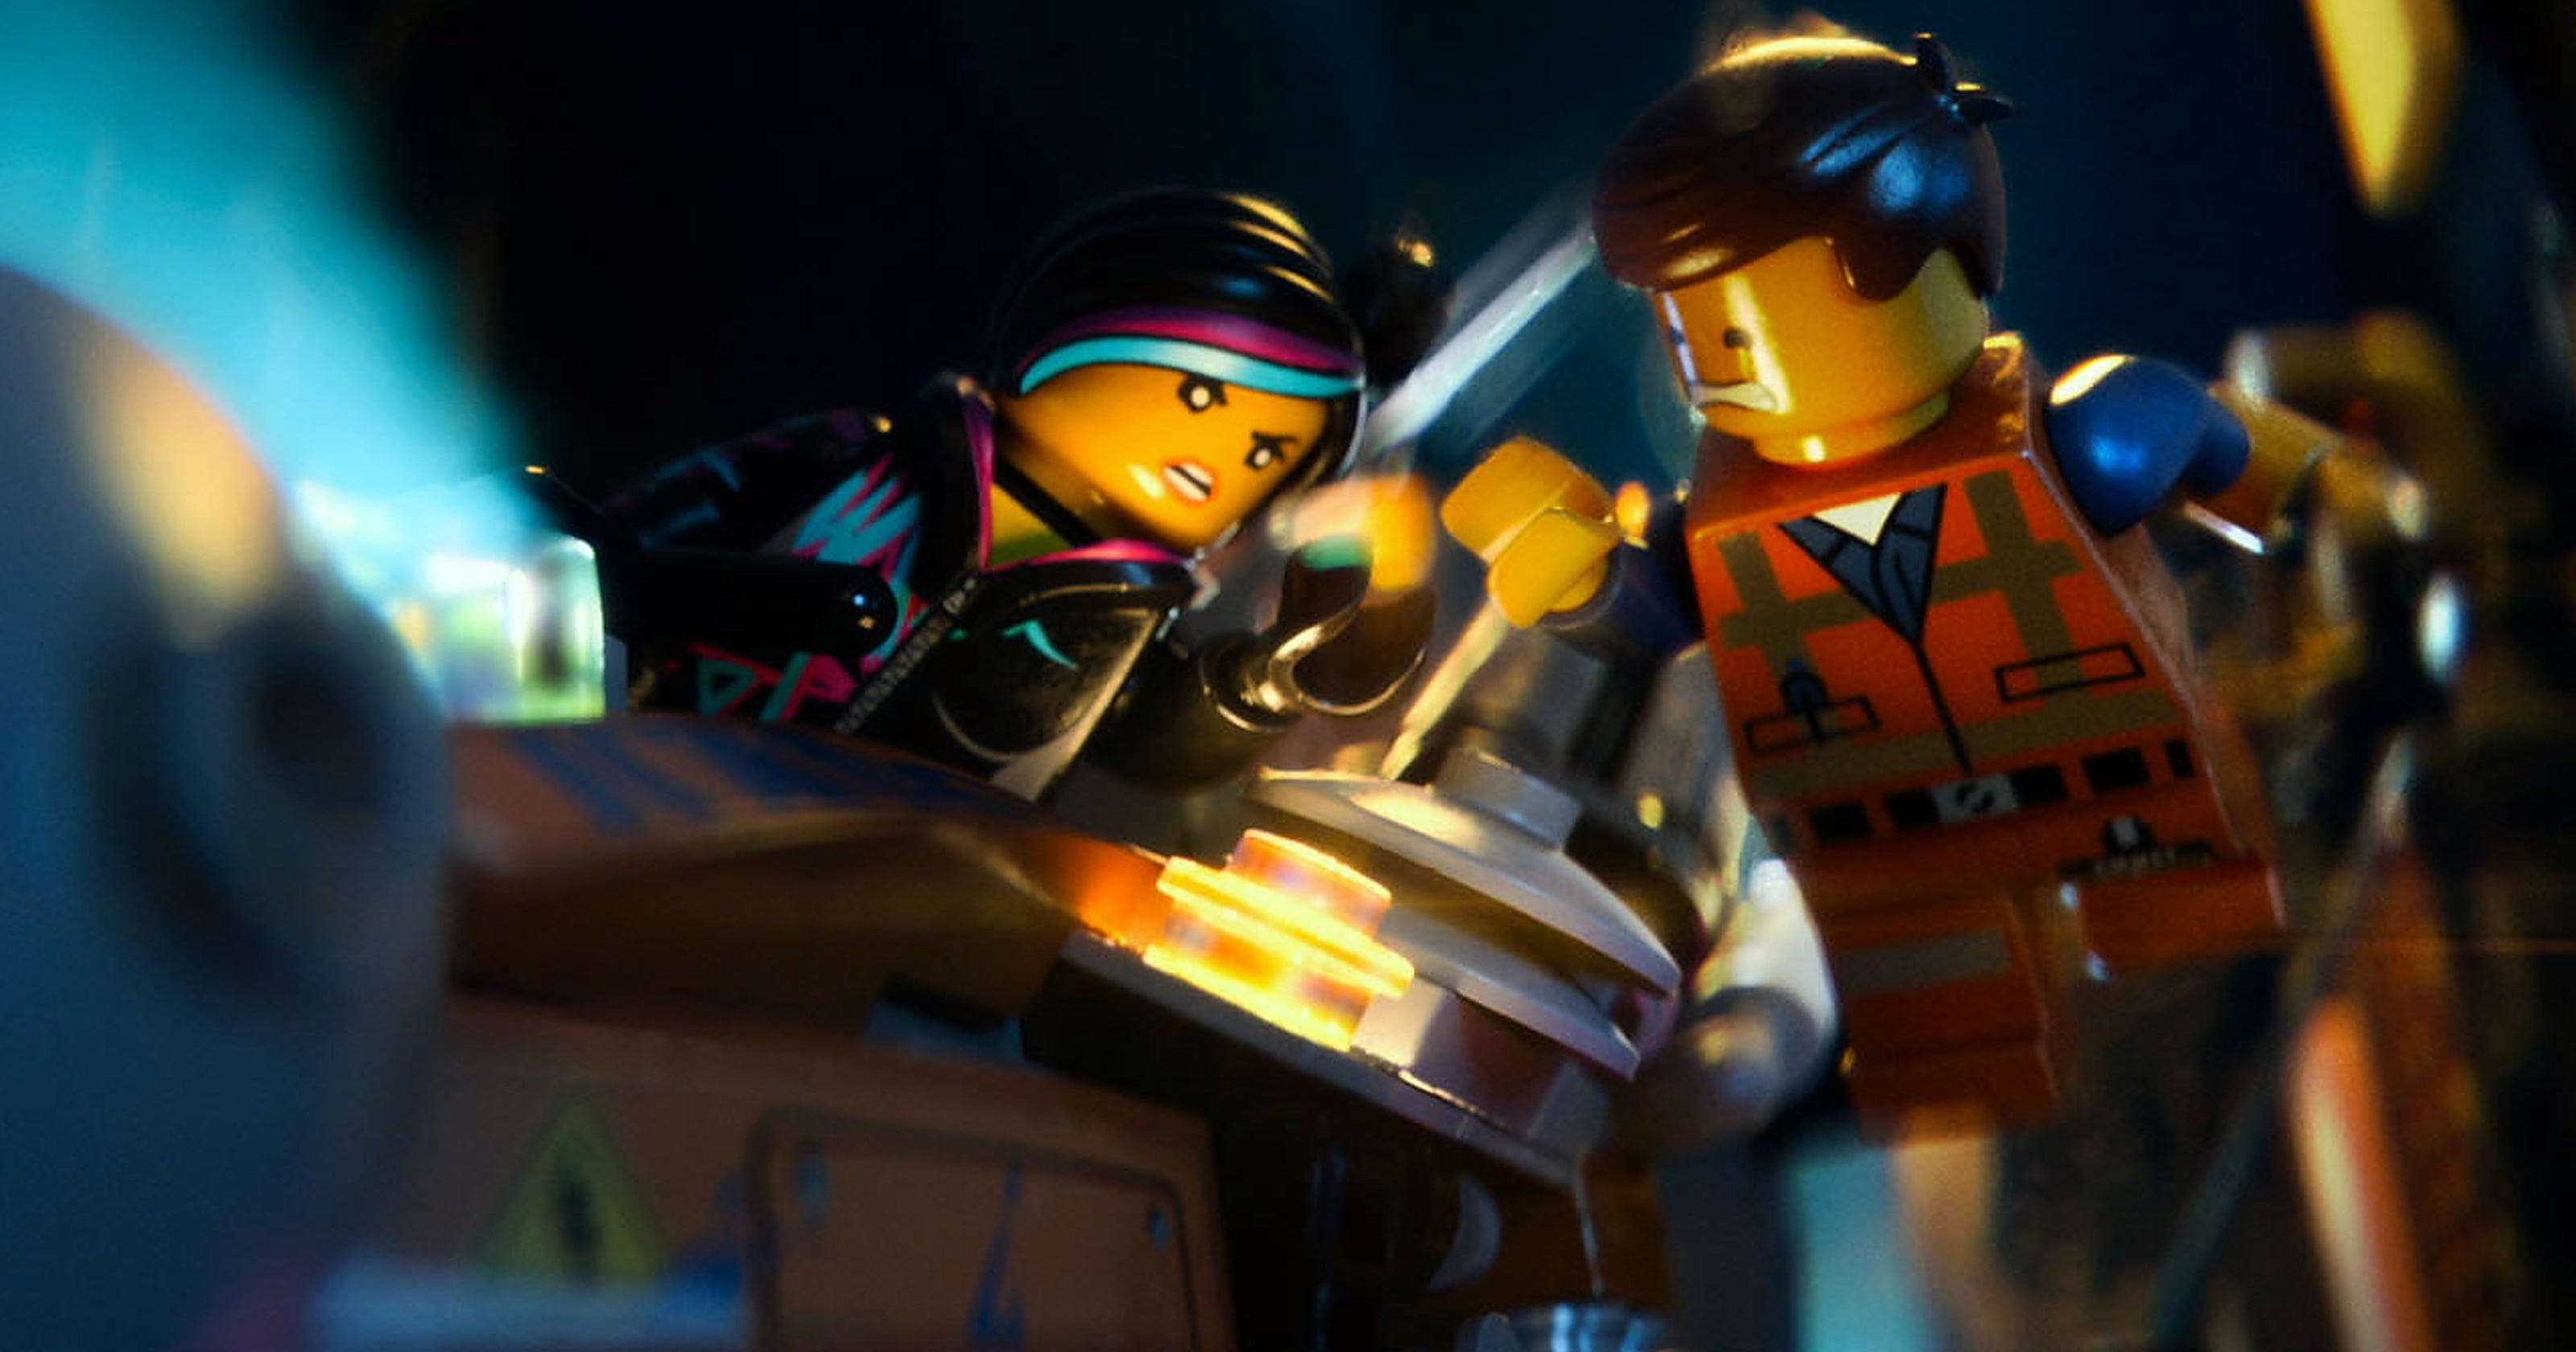 The Lego Movie' builds family fun from clever satire